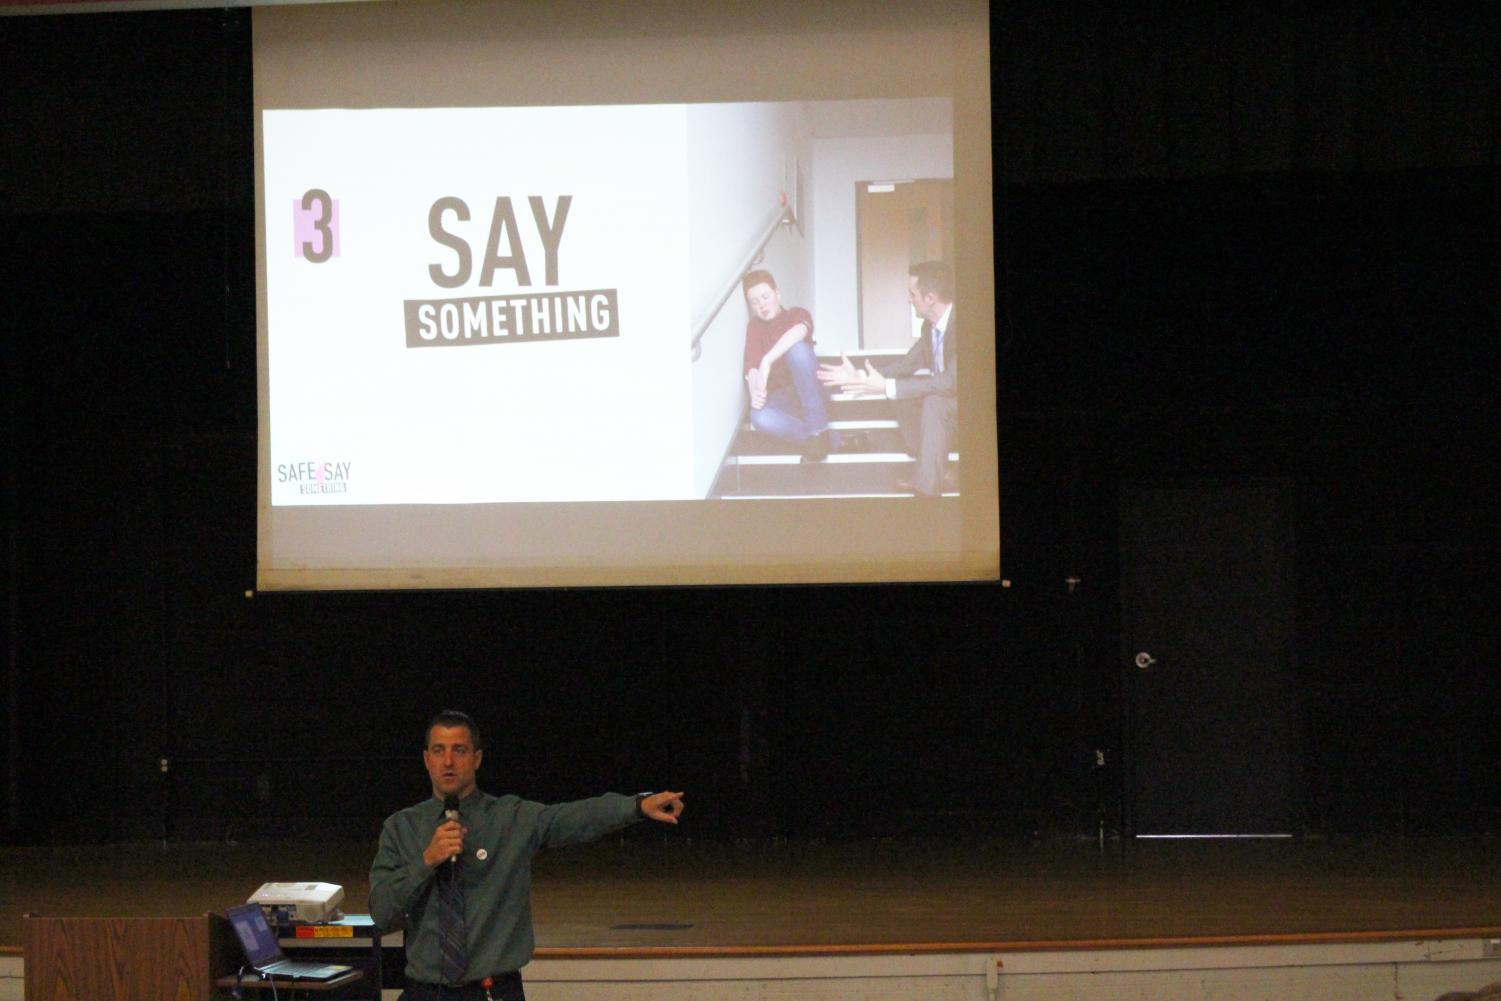 Freedom Area Middle School principal Mr. Smith introduces Safe2Say Something program to middle school students at an assembly on Oct. 2